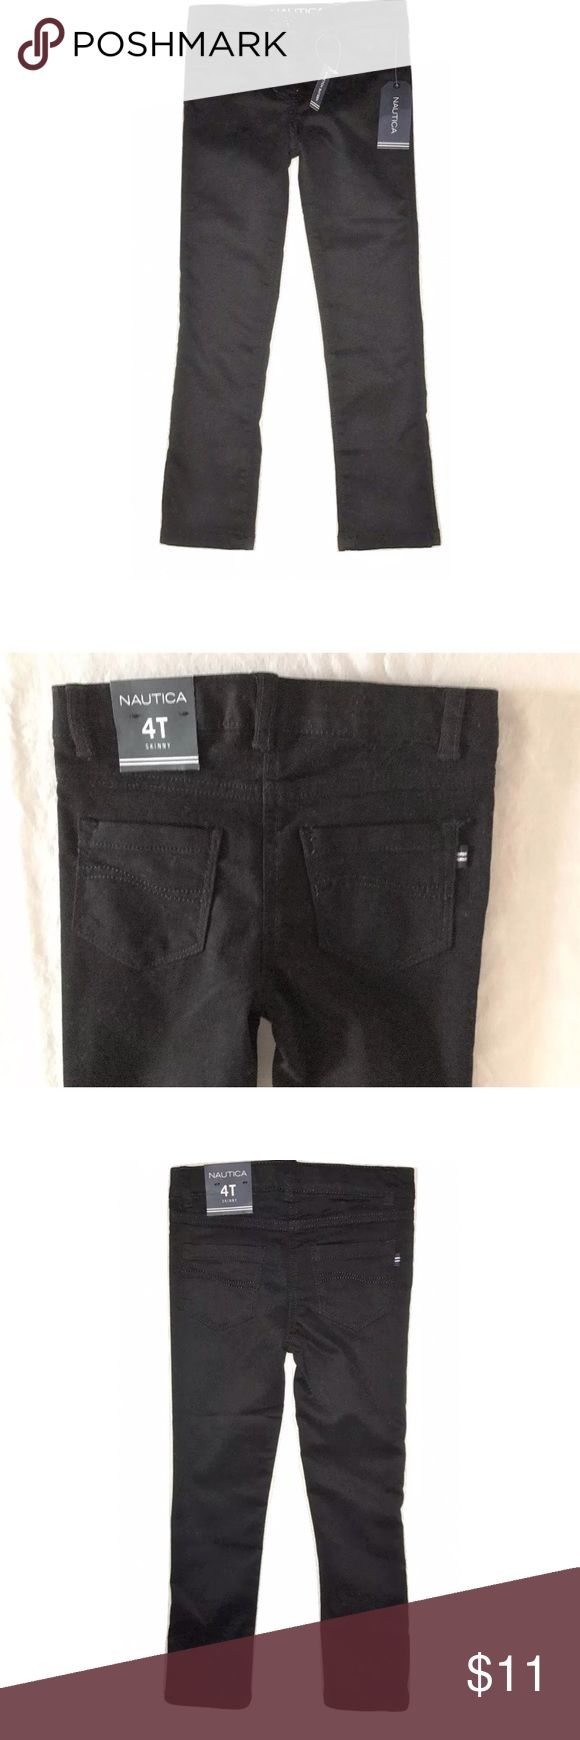 NEW Girls Stretch Skinny Pants NEW Girls Nautica Stretch Sateen Black Skinny Pants SIZE 4T  New with tags -MSRP on tag is $34.50 Adjustable waist Size 4T 63% Cotton, 34% Polyester, 3% Spandex  Thank you so much! Nautica Bottoms Casual